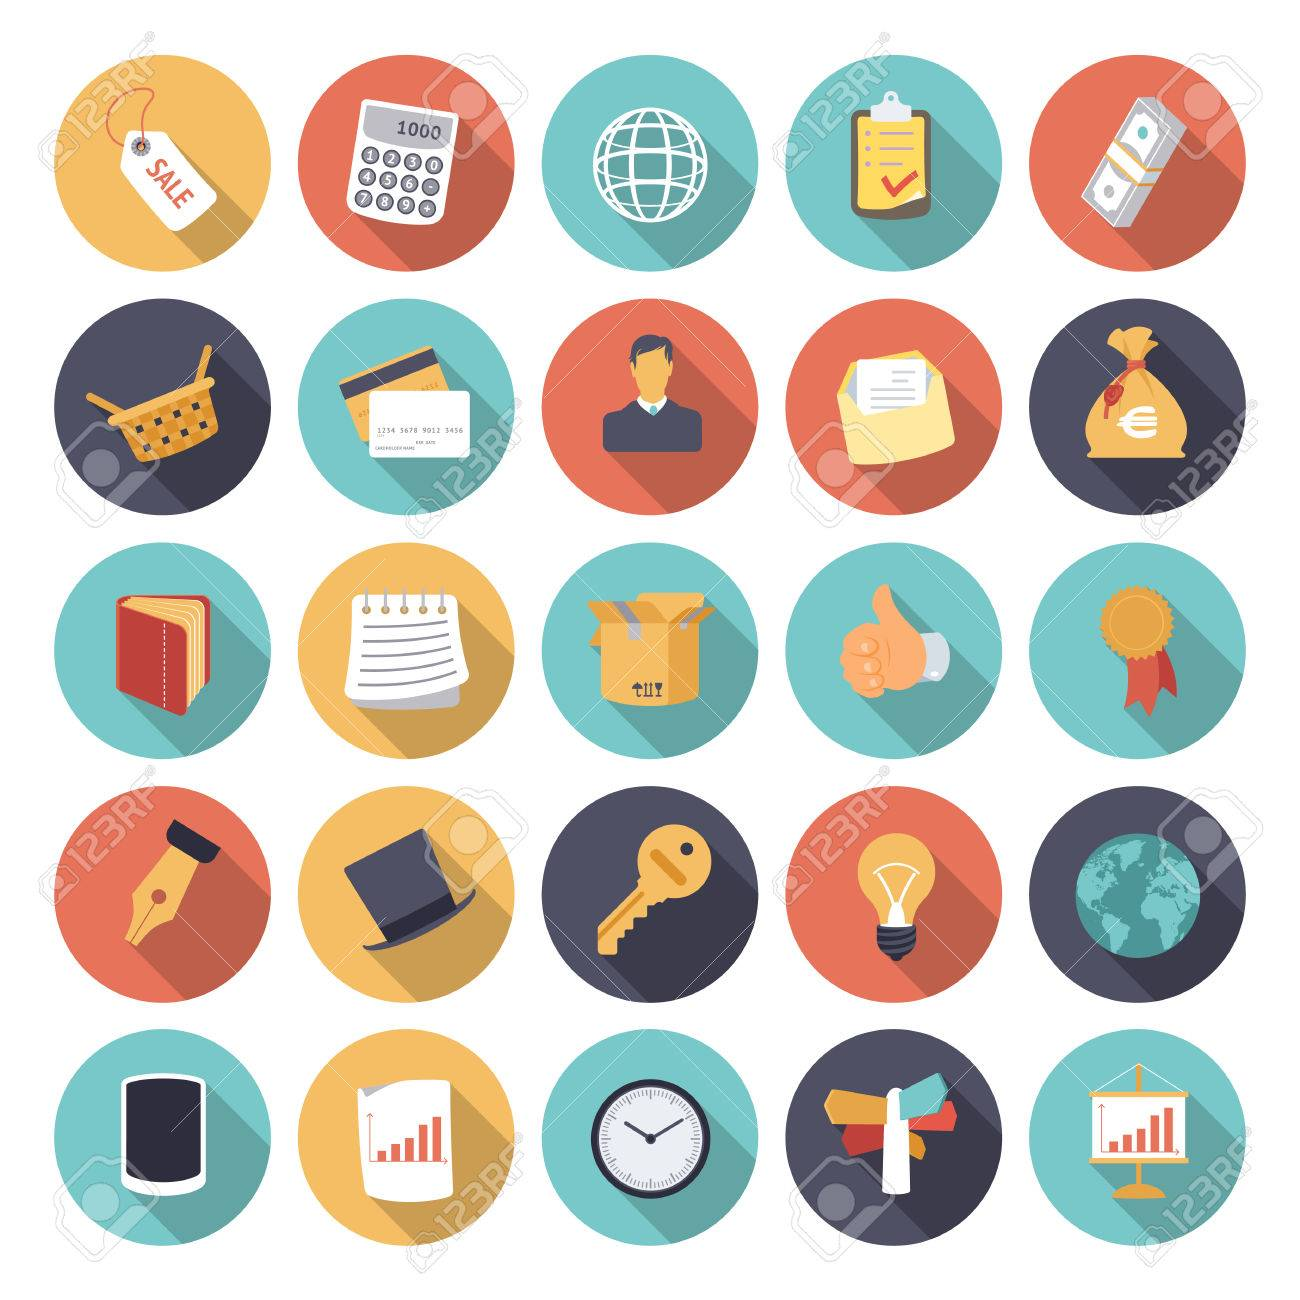 Flat design icons for business and finance. - 31965460